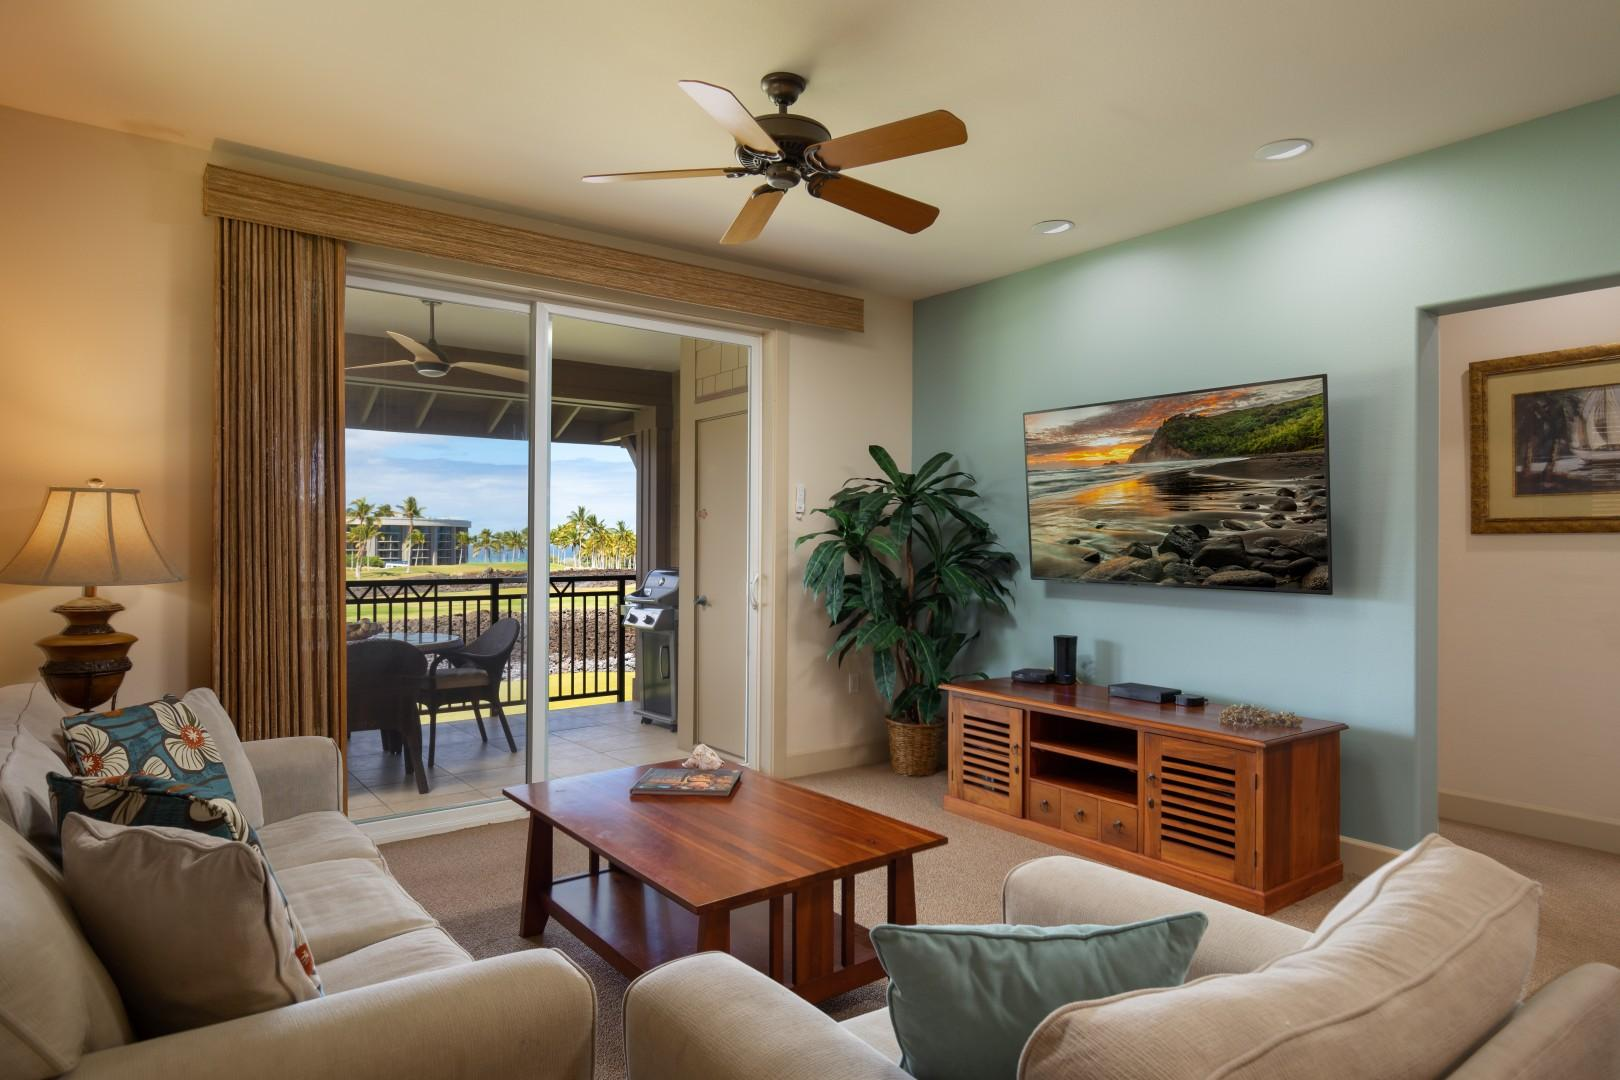 Relax inside in the spacious living room with your smart TV and ocean views.